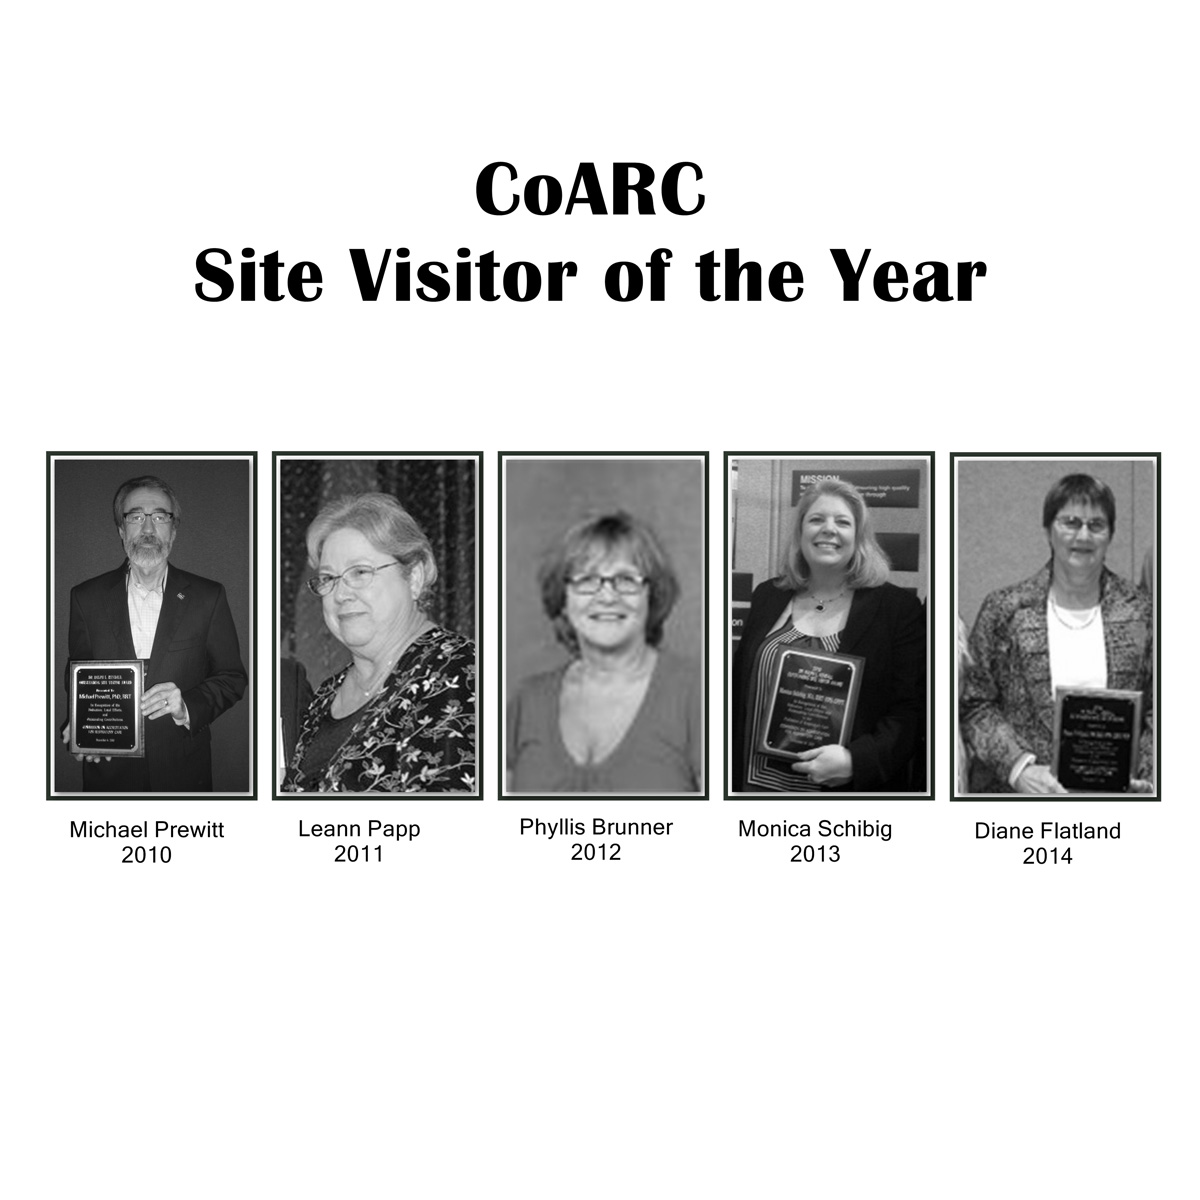 Site Visitor of the Year